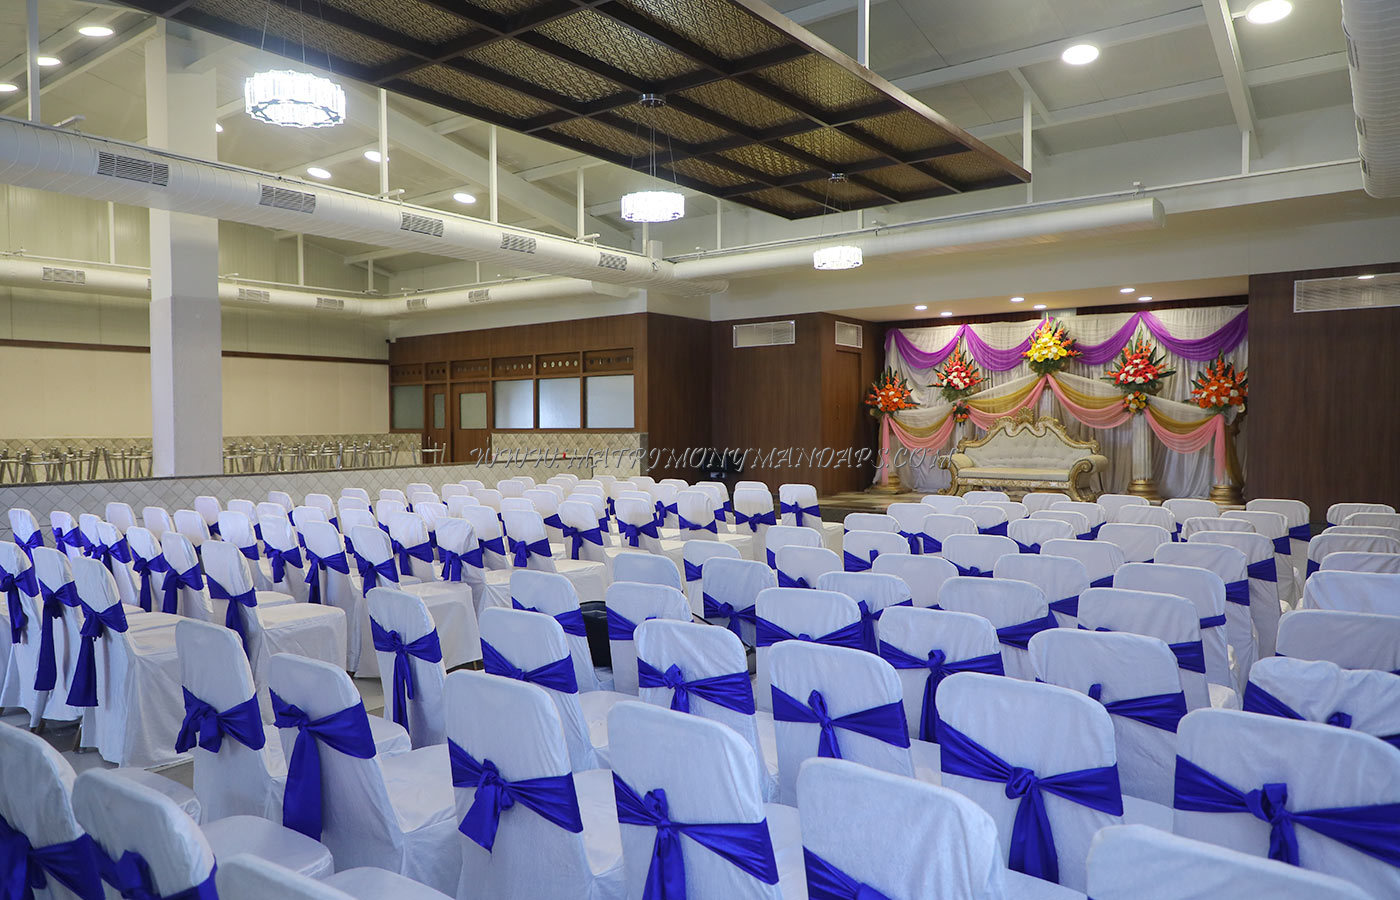 Find the availability of the Raga Banquet Hall (A/C) in Sanjay Nagar, Bangalore and avail special offers